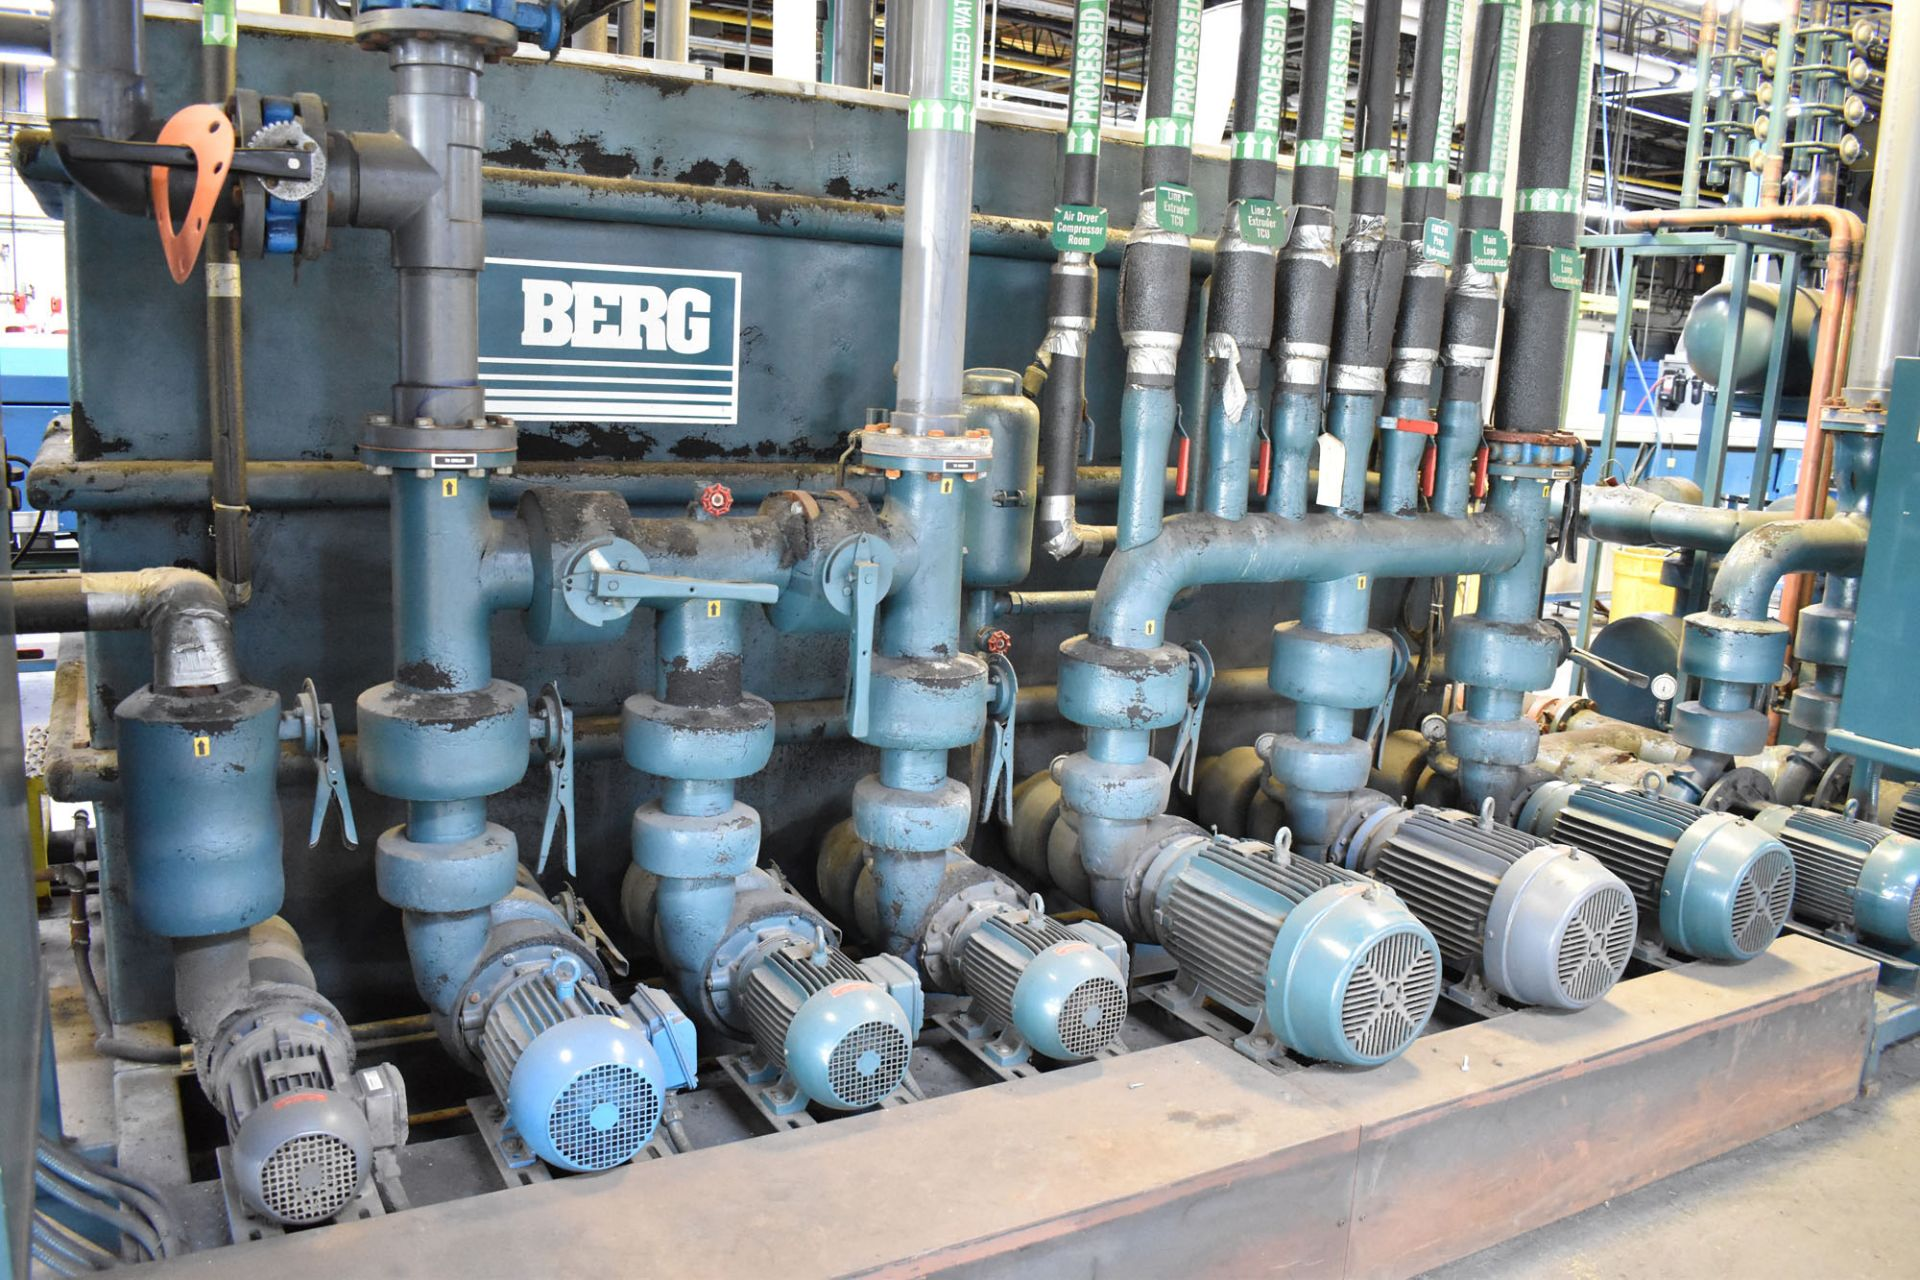 """BERG CT-1146 SKID MOUNTED CHILLER PUMP SET WITH 93 HP, 132""""X48""""X76""""H TANK, BERG 20 HP AUXILIARY - Image 2 of 6"""